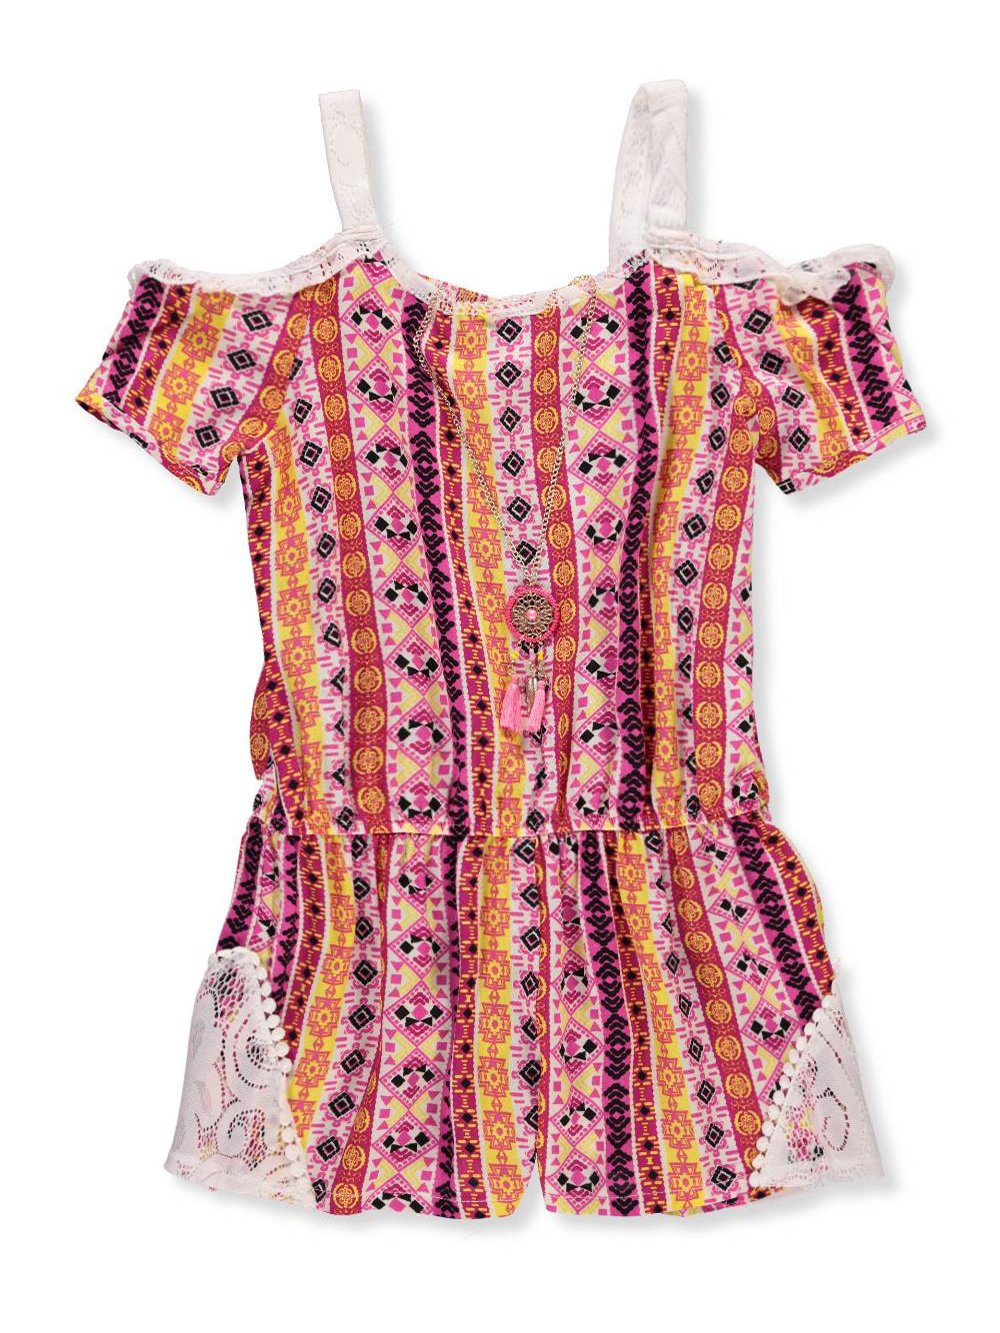 RMLA Girls' Cold Shoulder Romper with Necklace 10